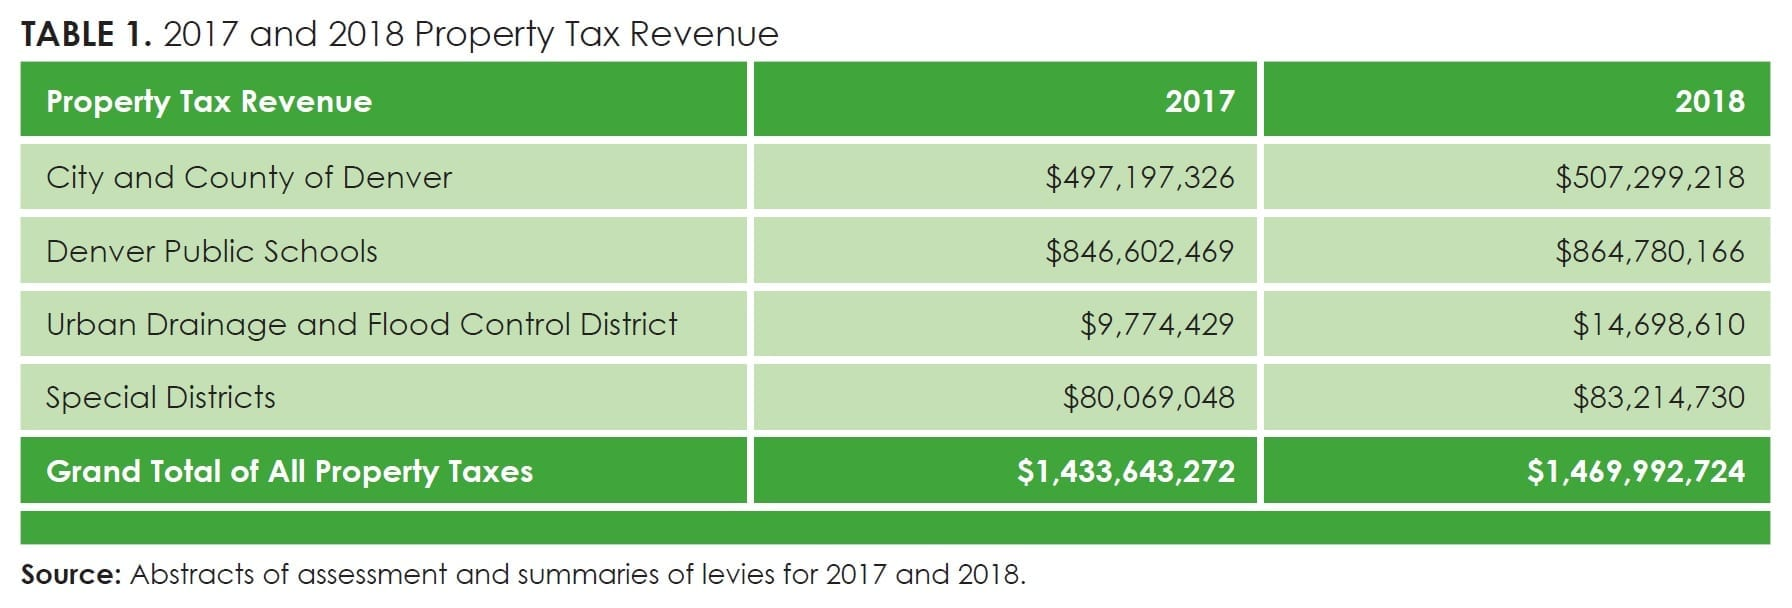 Table1_2017 and 2018 Property Tax Revenue